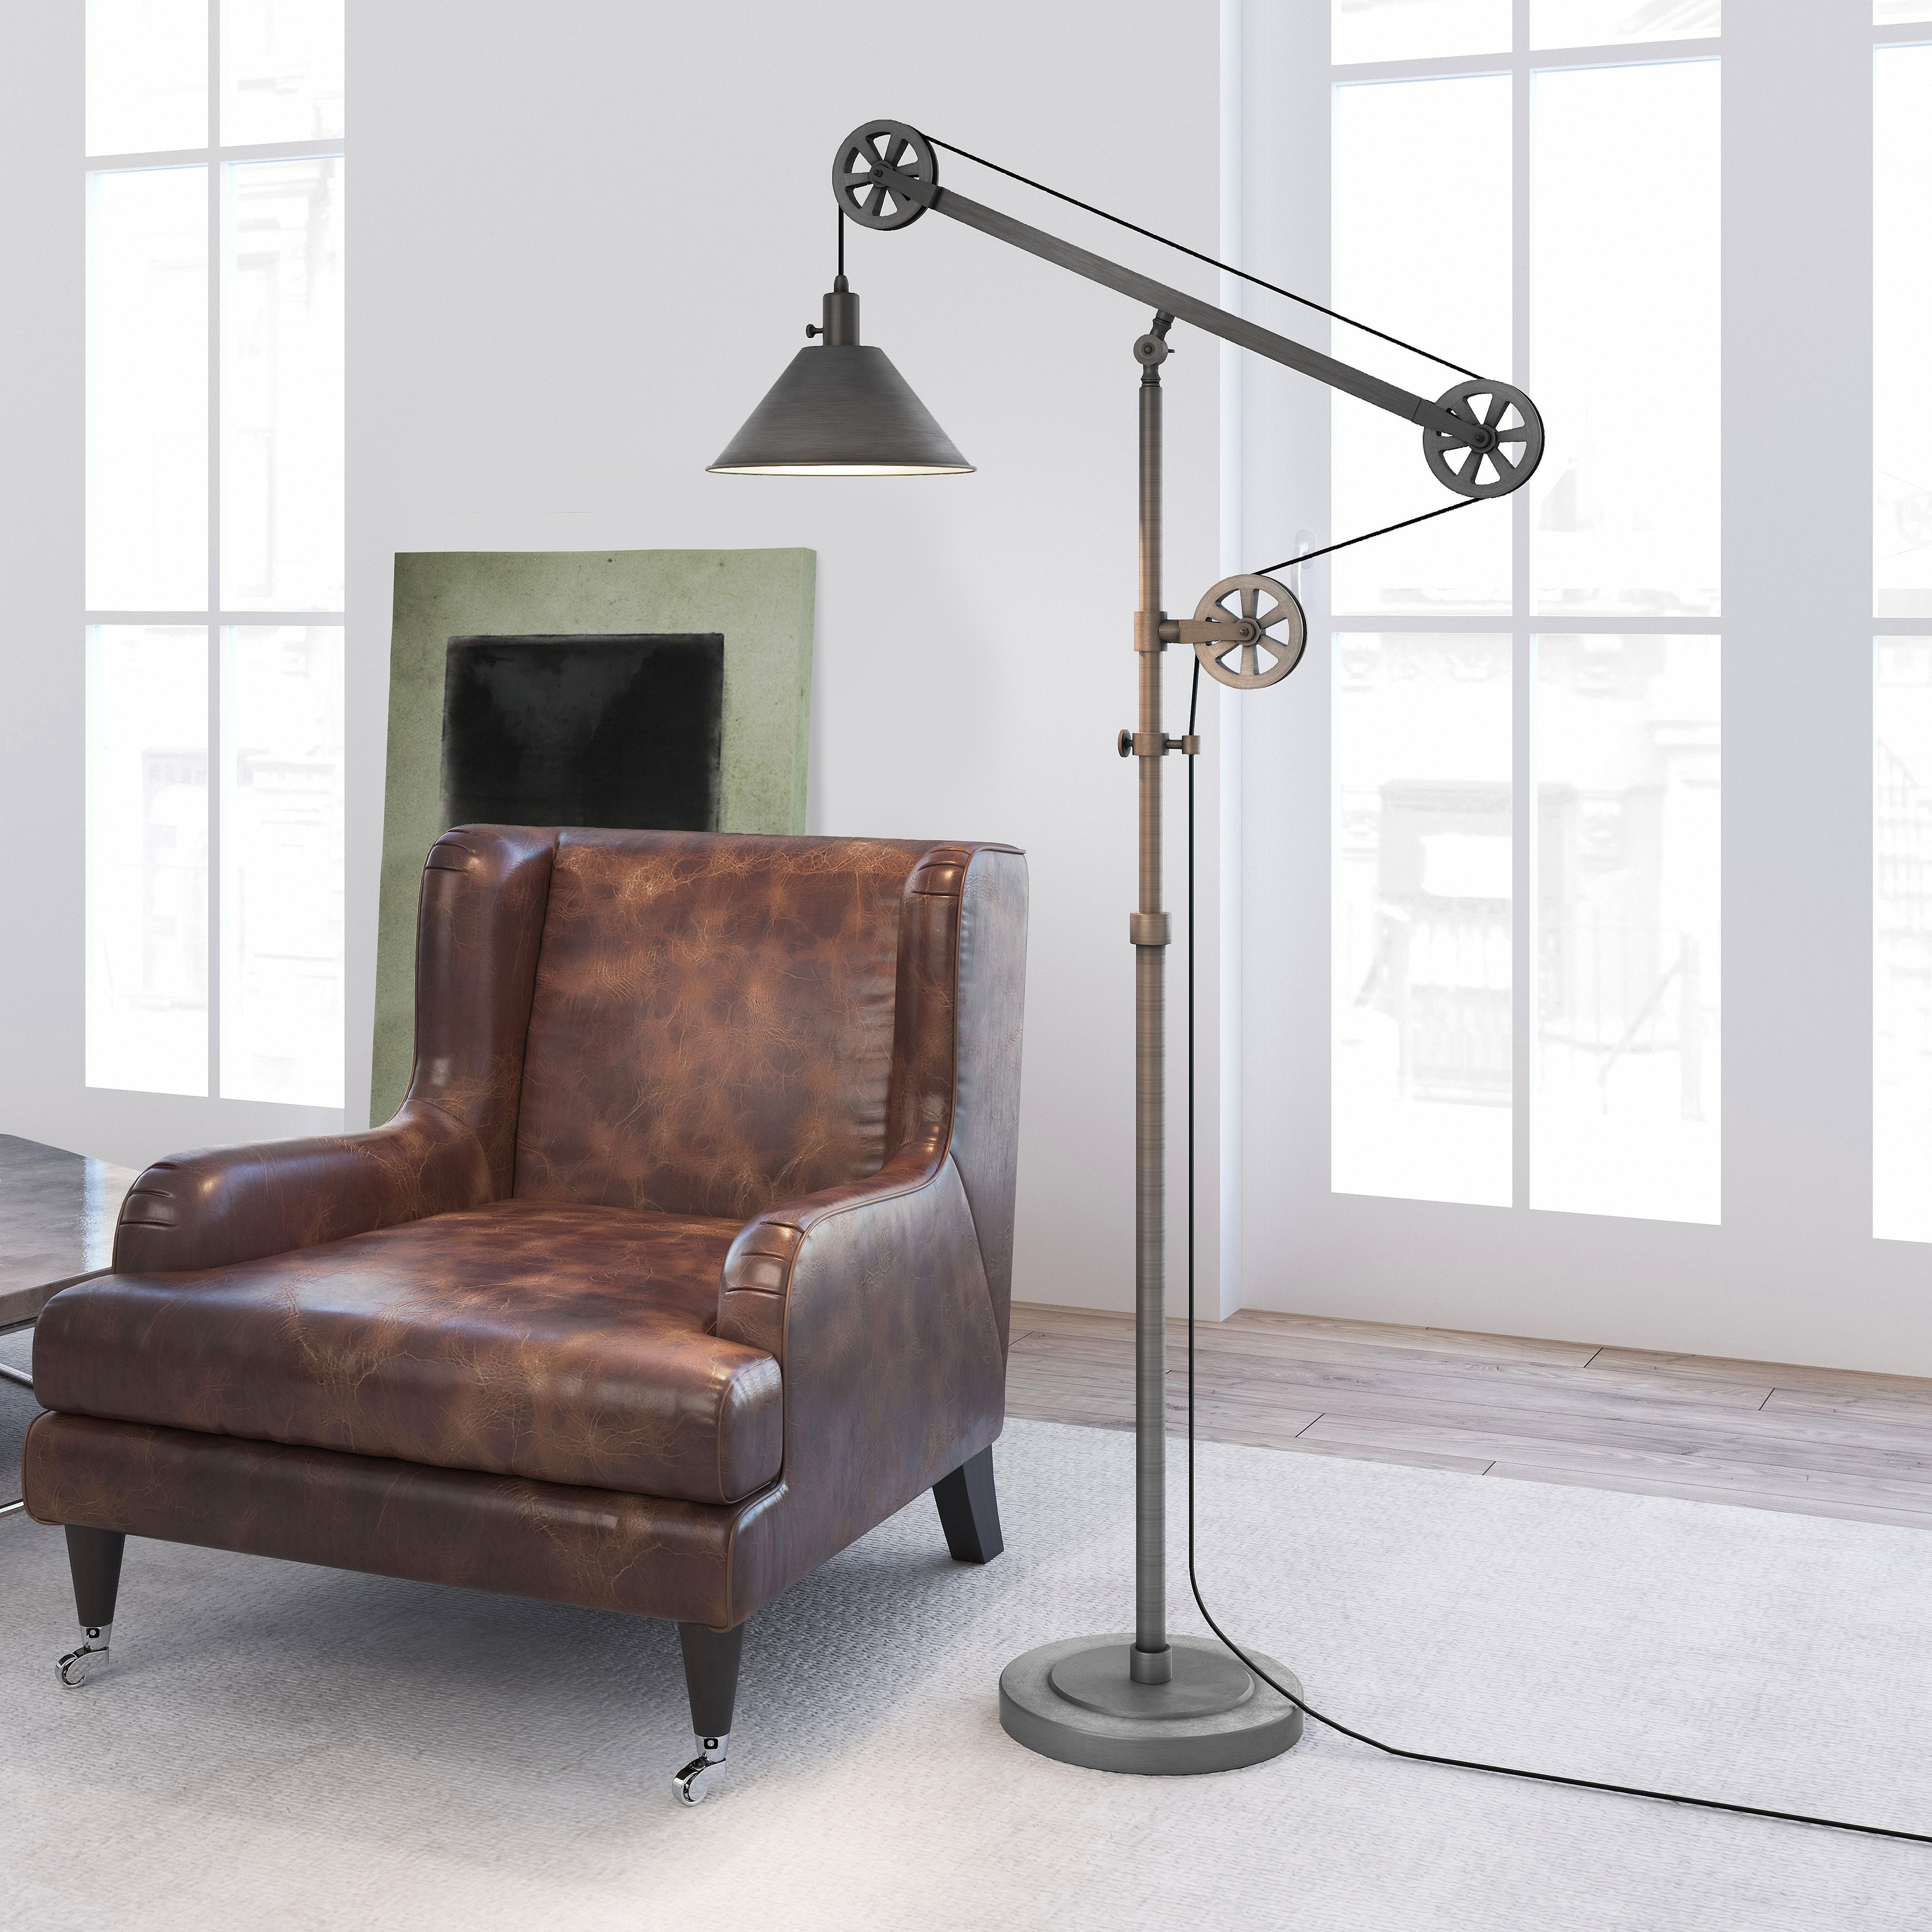 Descartes Farmhouse Floor Lamp With Pulley System Optional Finishes